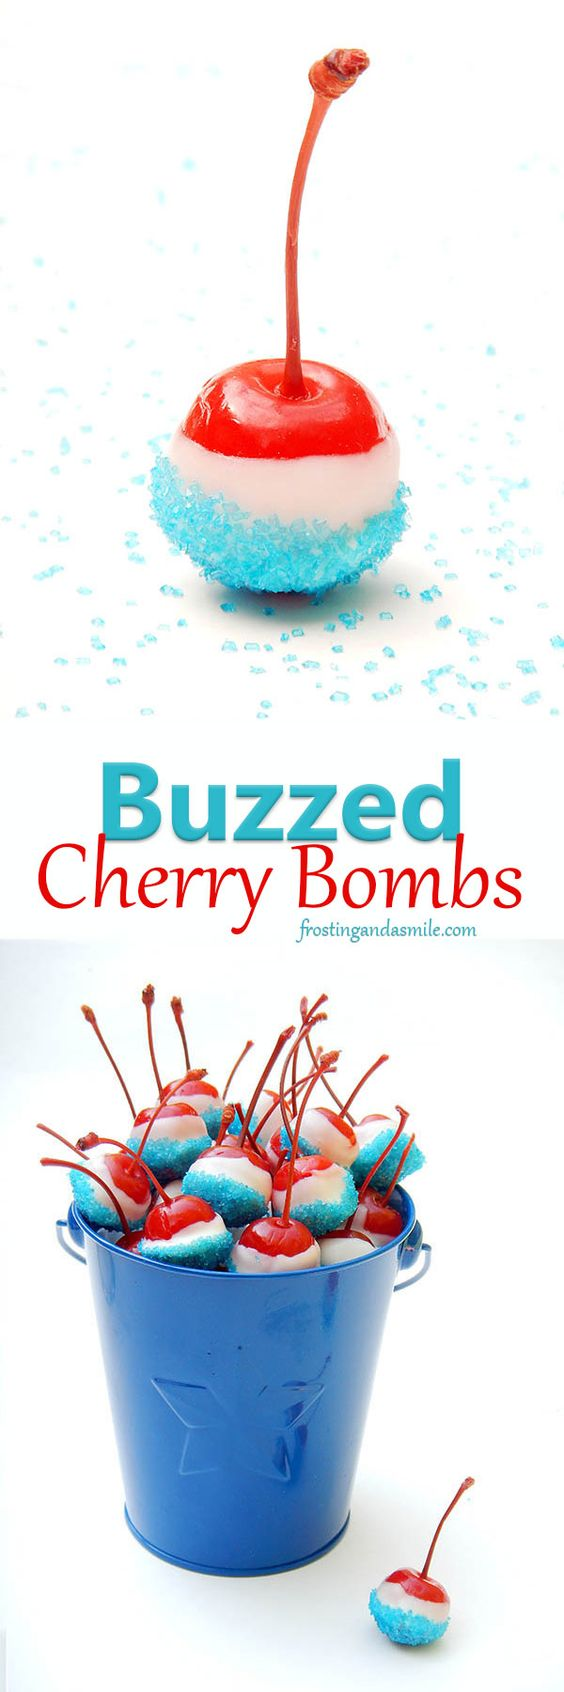 Easy DIY 4th of July treat idea for adults: Buzzed Cherry Bombs ~ Soak cherries in vanilla vodka, then dip in melted candy and sprinkles. They will be the hit of your Patriotic Party!